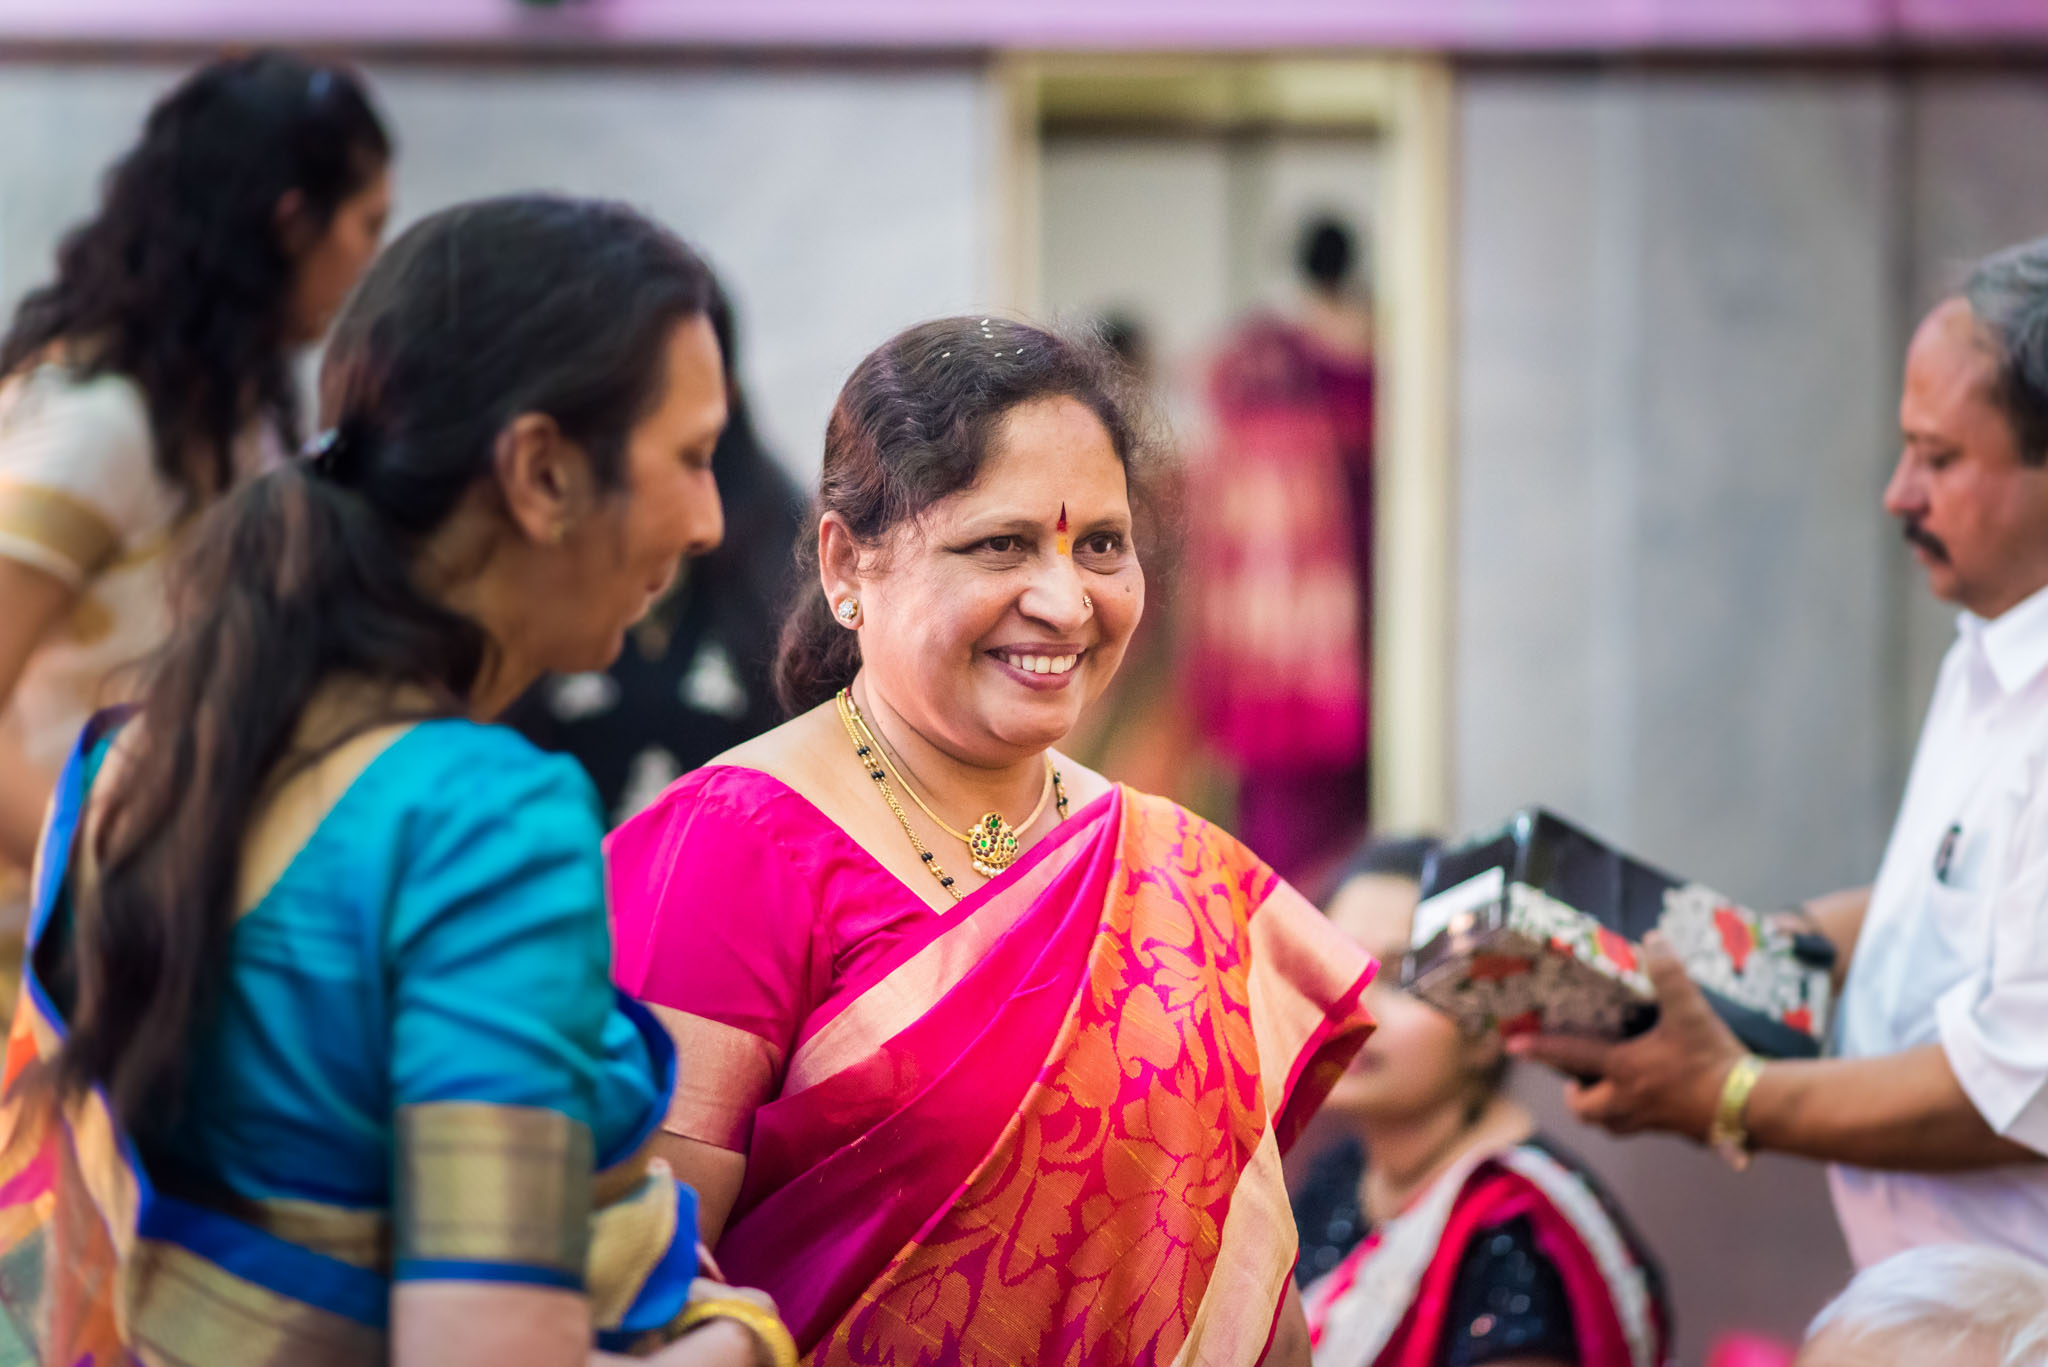 WhatKnot-Candid-Wedding-Photography-Mumbai-Bangalore-244